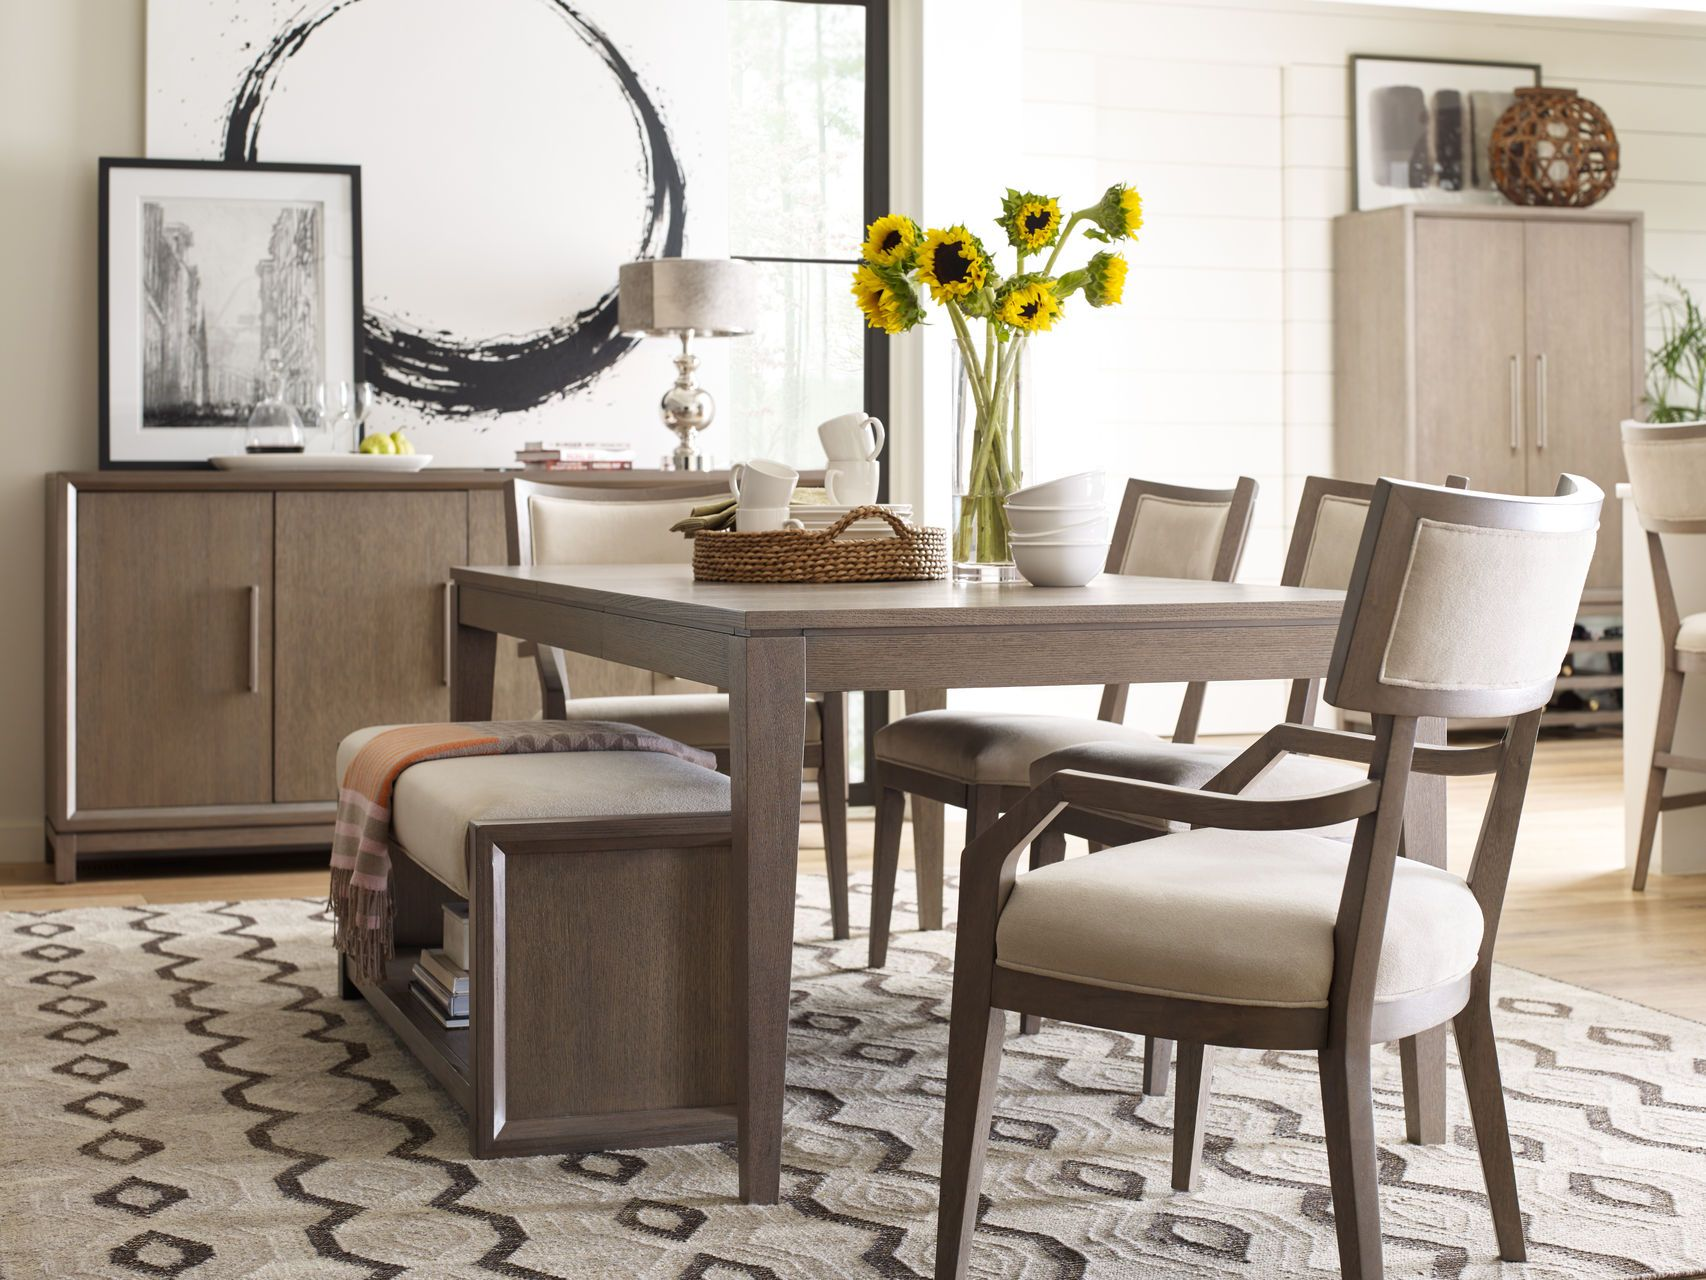 Legacy Classic Rachael Ray s High Line 7 Piece Dining Set